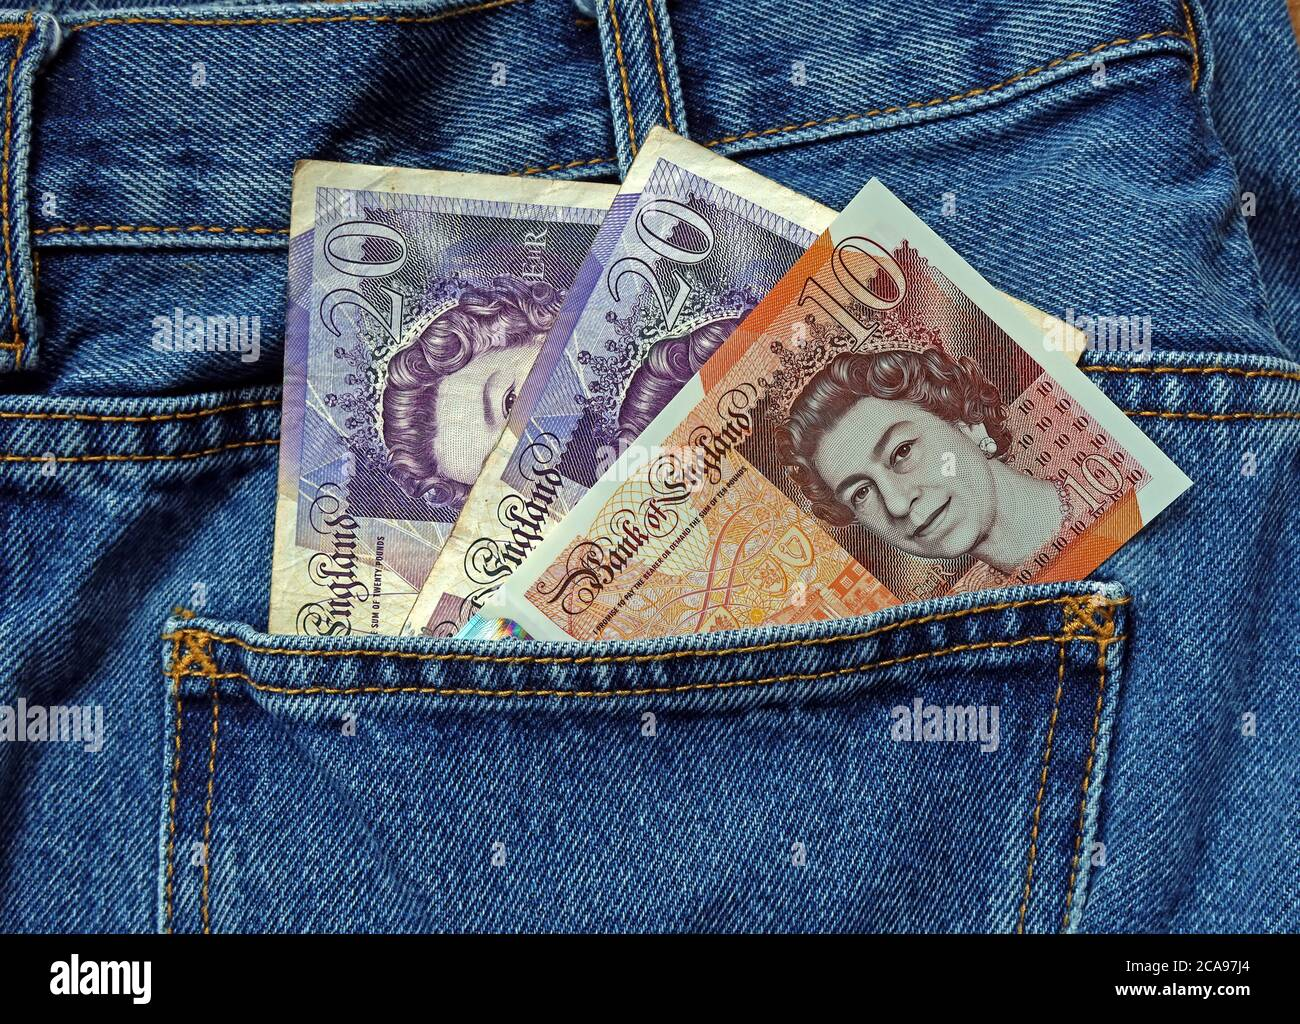 Money in your back pocket, black economy,cash in hand jobs,gig economy, cash in hand work,Report a business or your employer to HMRC Stock Photo